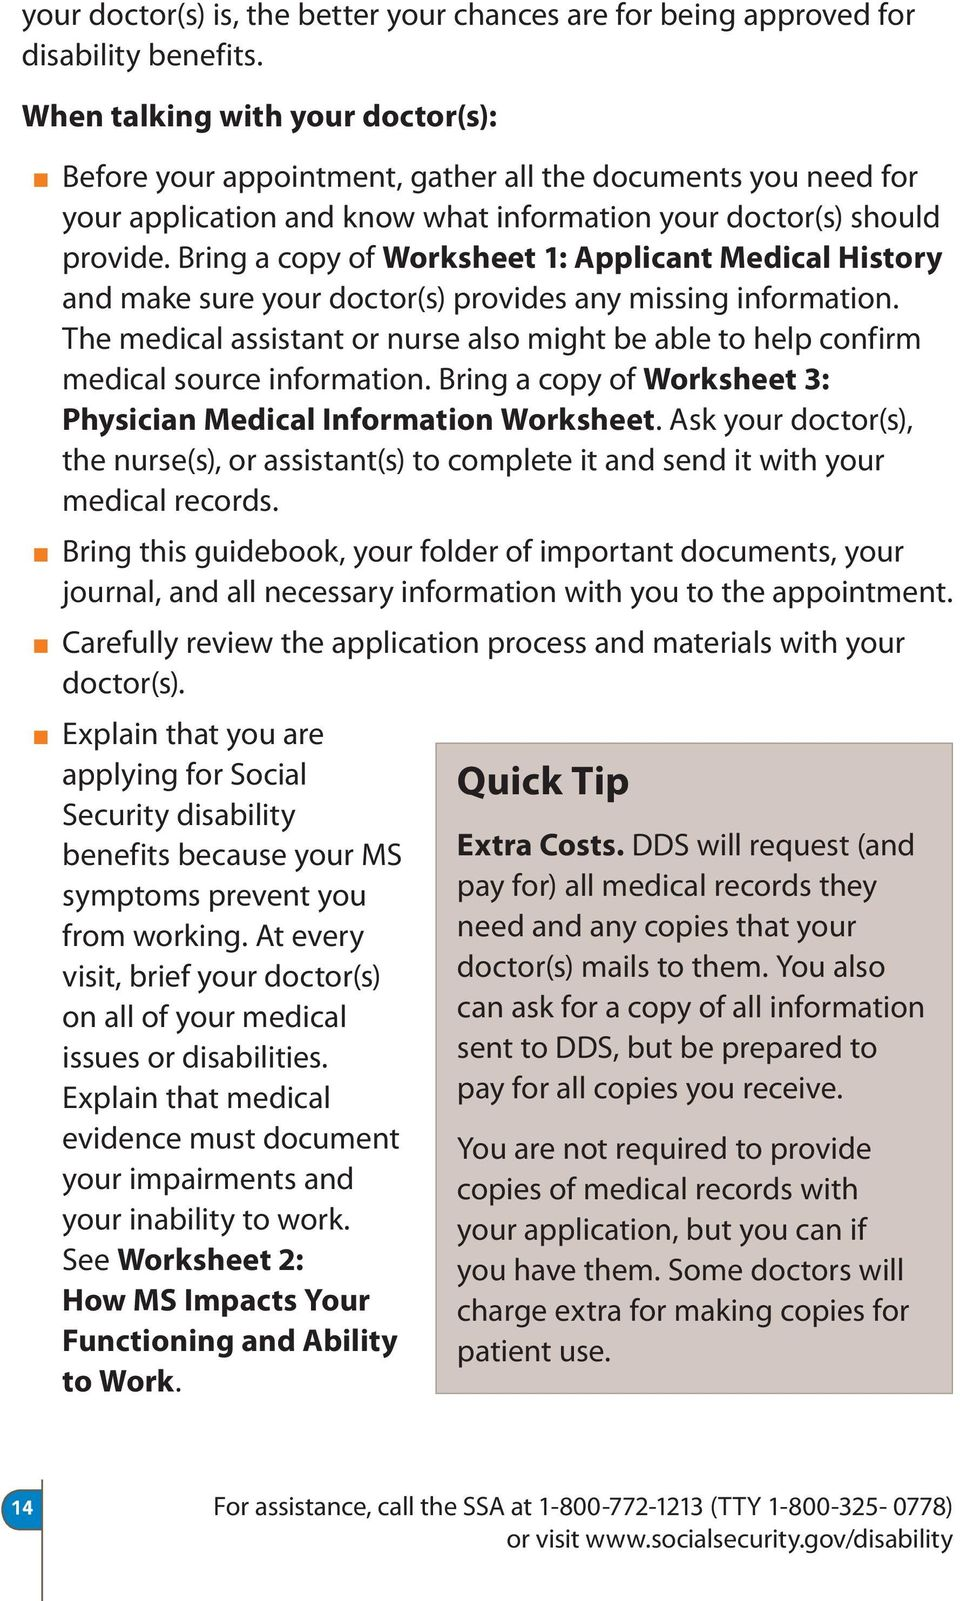 Bring a copy of Worksheet 1: Applicant Medical History and make sure your doctor(s) provides any missing information.